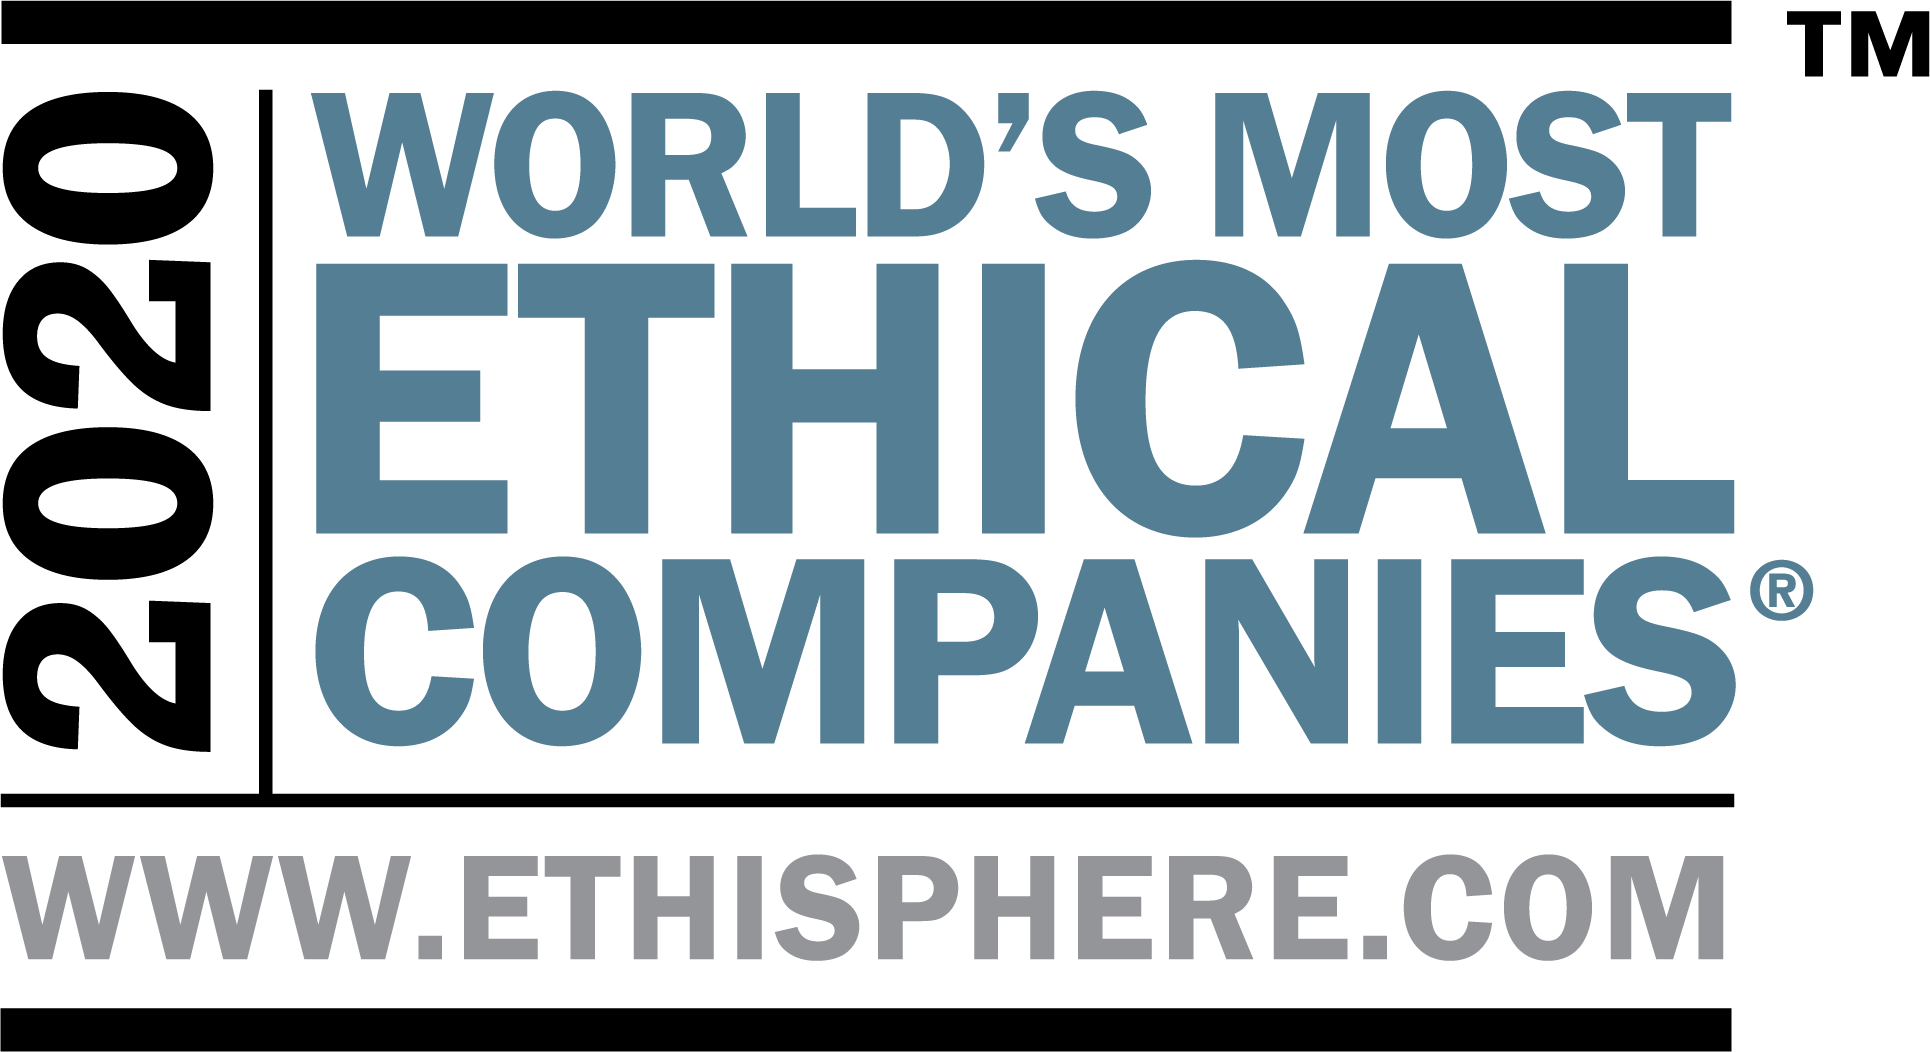 2020 World's Most Ethical Companies 14th Consecutive Year